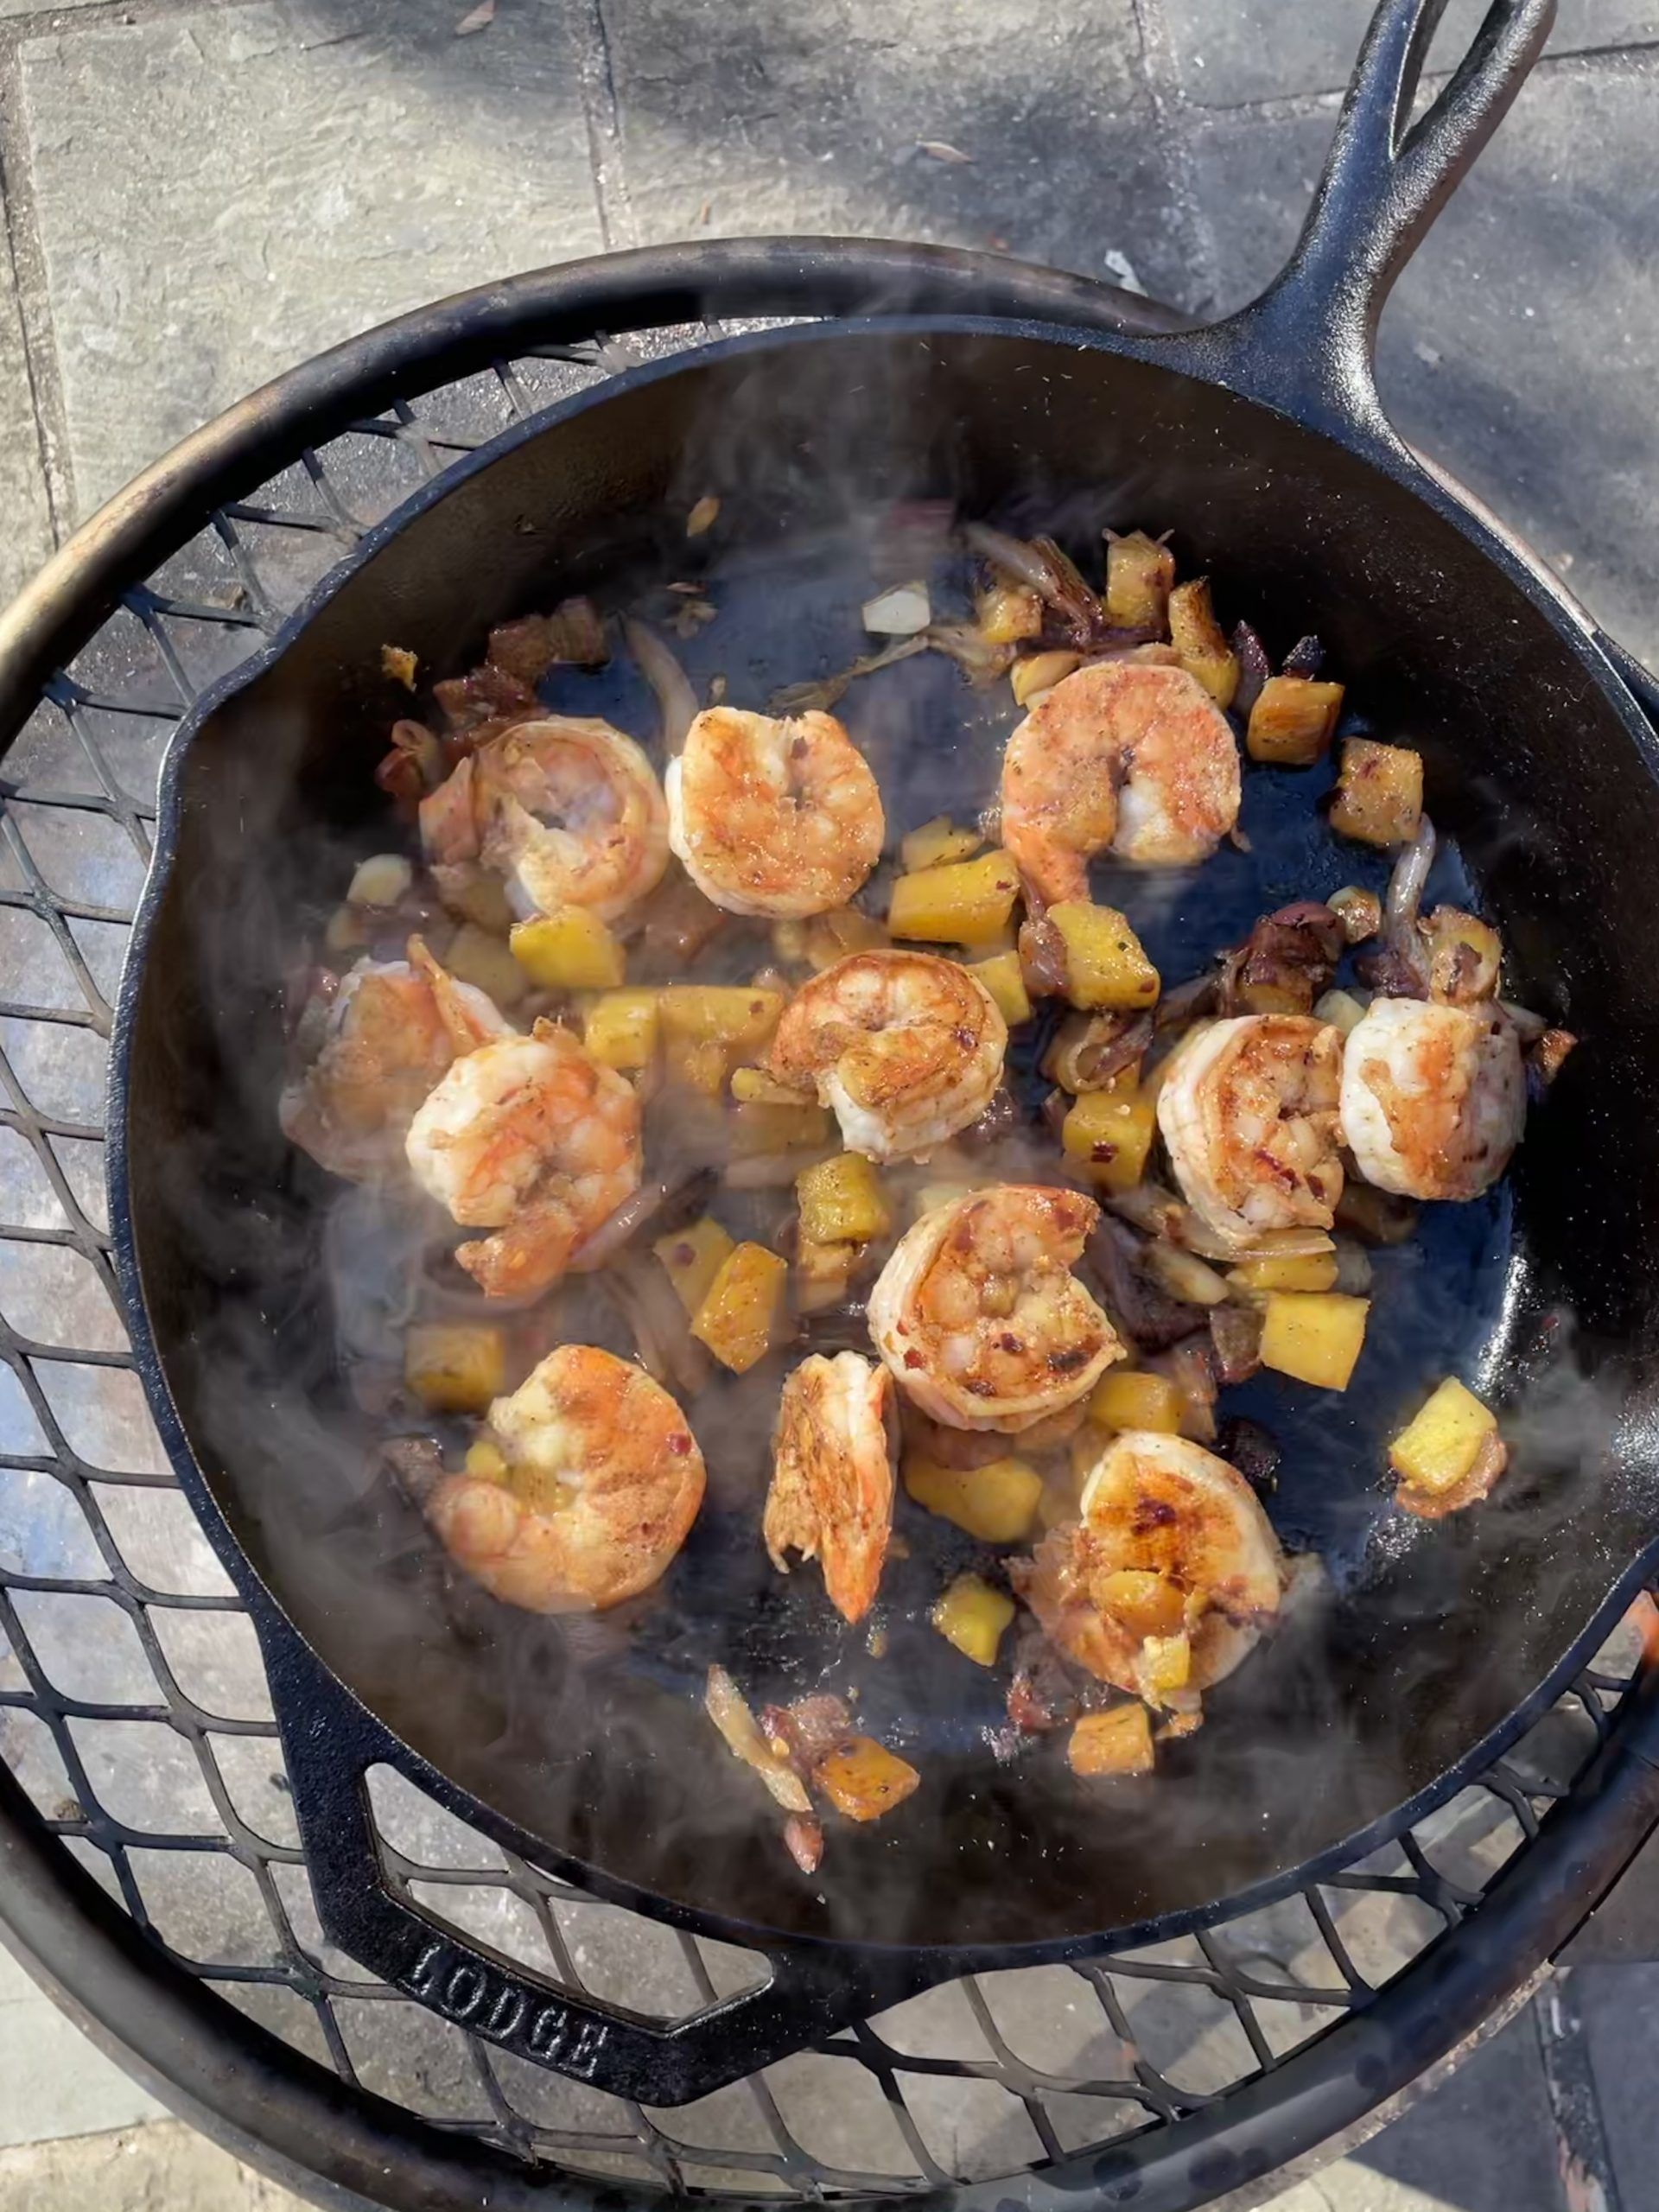 Shrimp and Pineapple in a Cast Iron Skillet